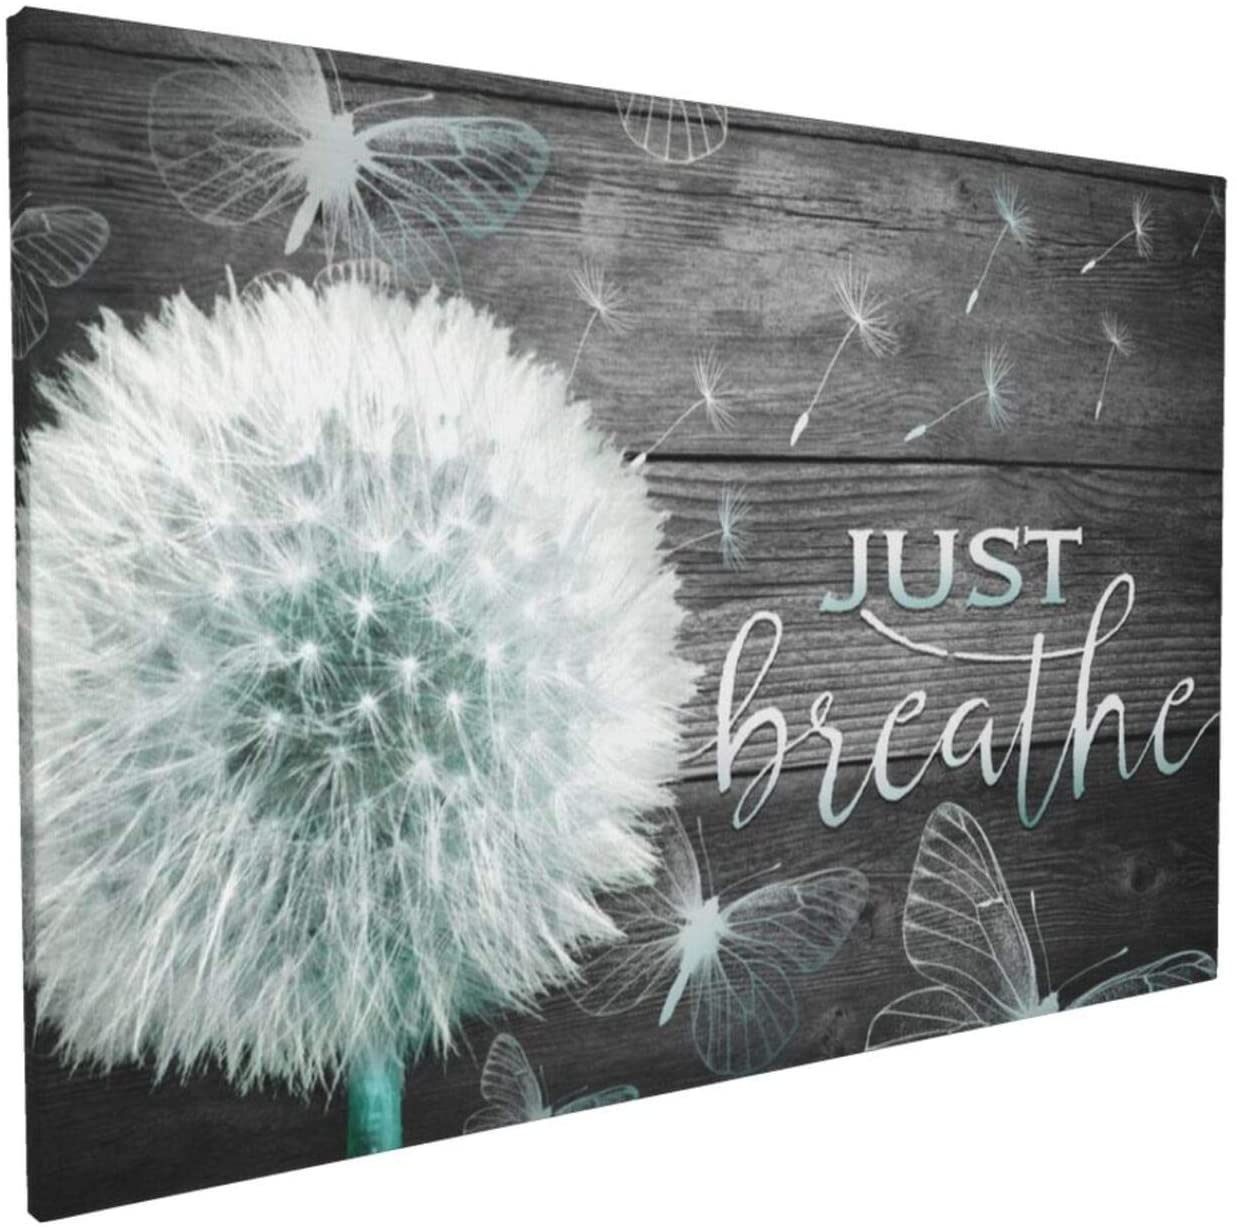 Just Breathe Wall Art Gray Dandelion Canvas Wall Art For Living Room Bathroom Decoration White Flower Flora Dandelion Picture Canvas Prints Artwork Framed Ready To Hang 16x24 Inch